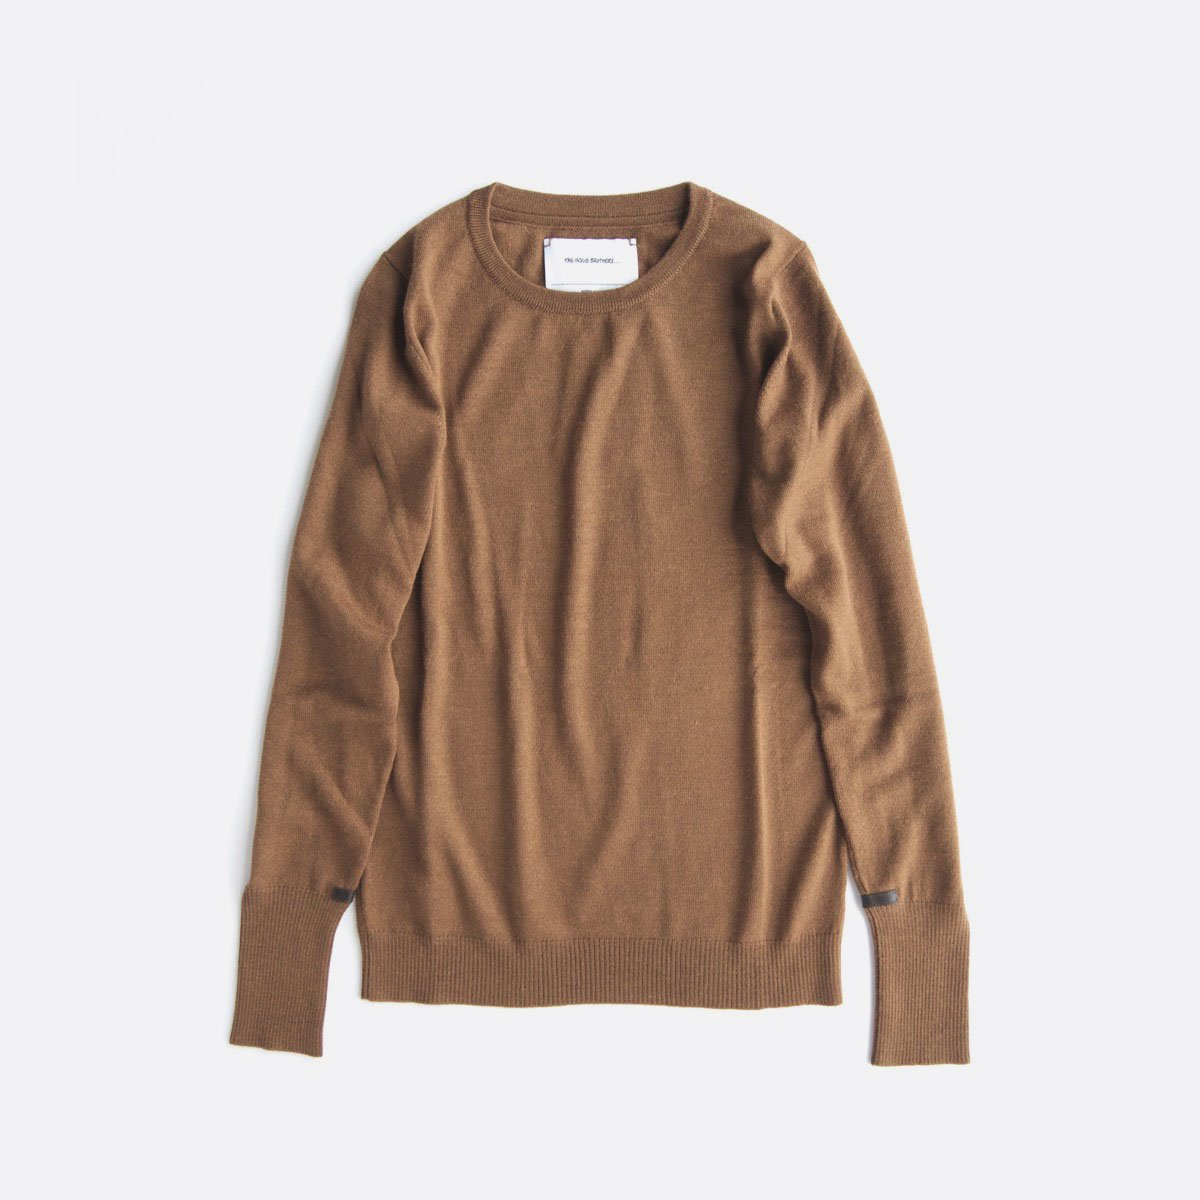 THE INOUE BROTHERS…  Crew Neck Pullover (Camel)